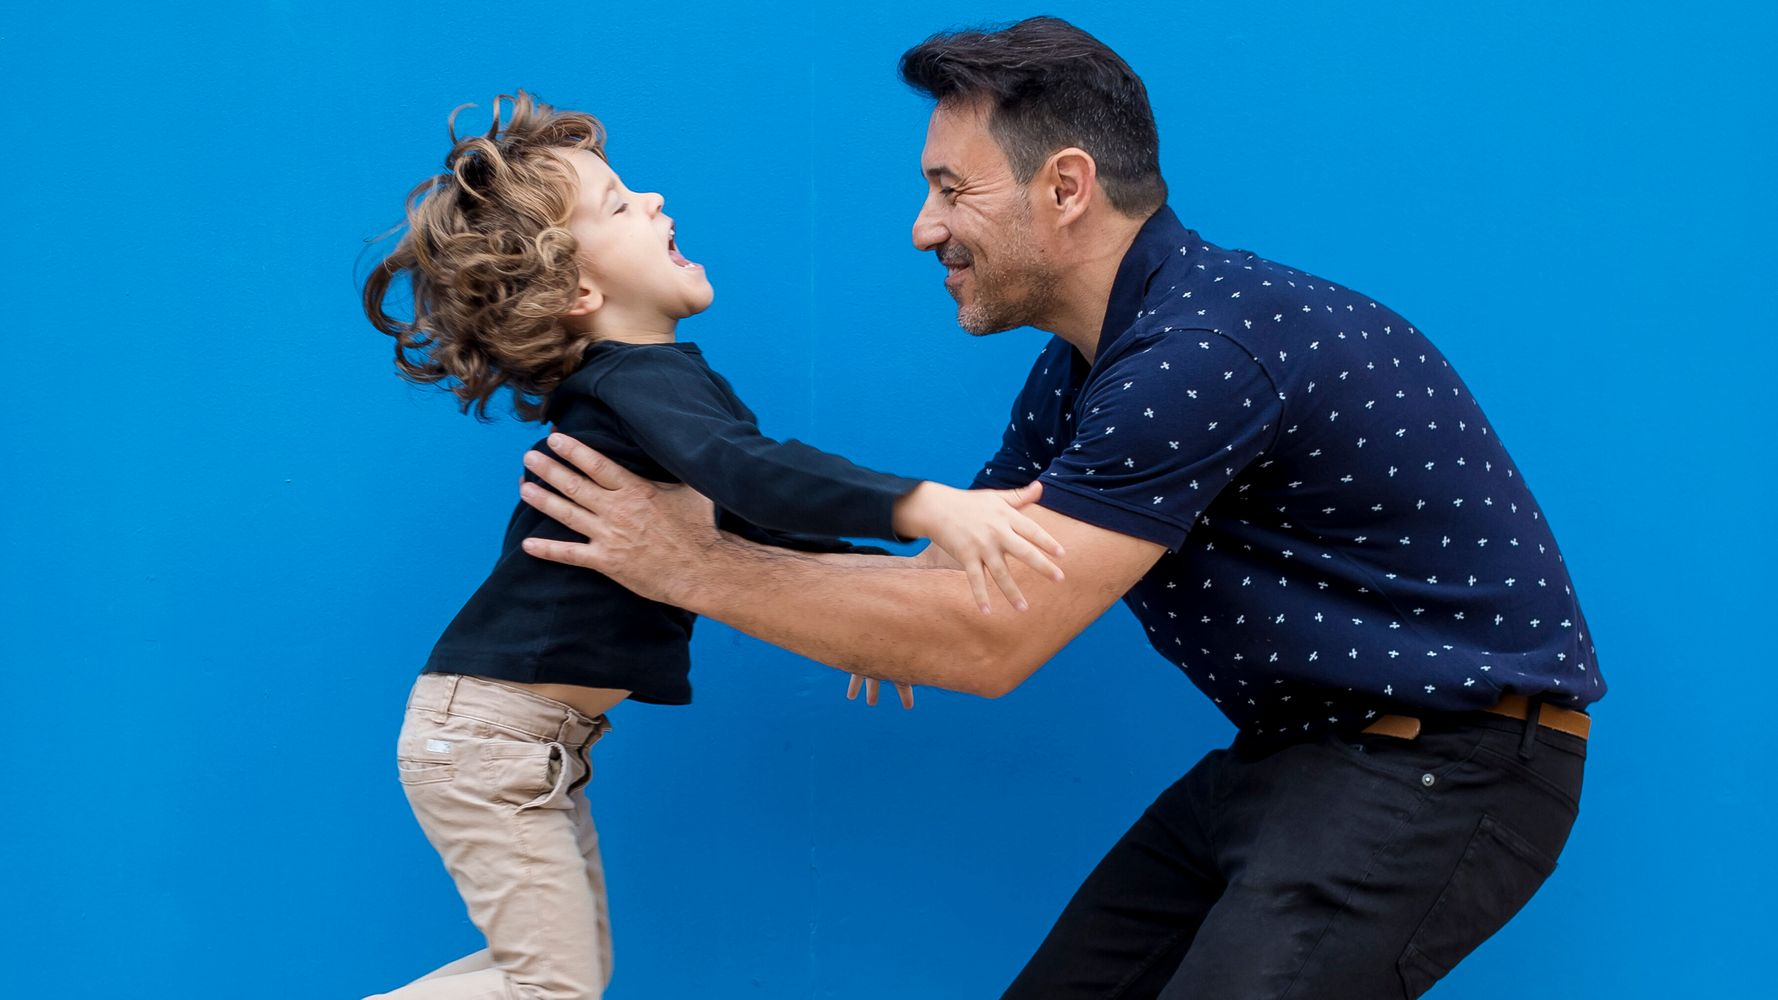 How To Introduce Your Child To A New Partner Without Making It Weird